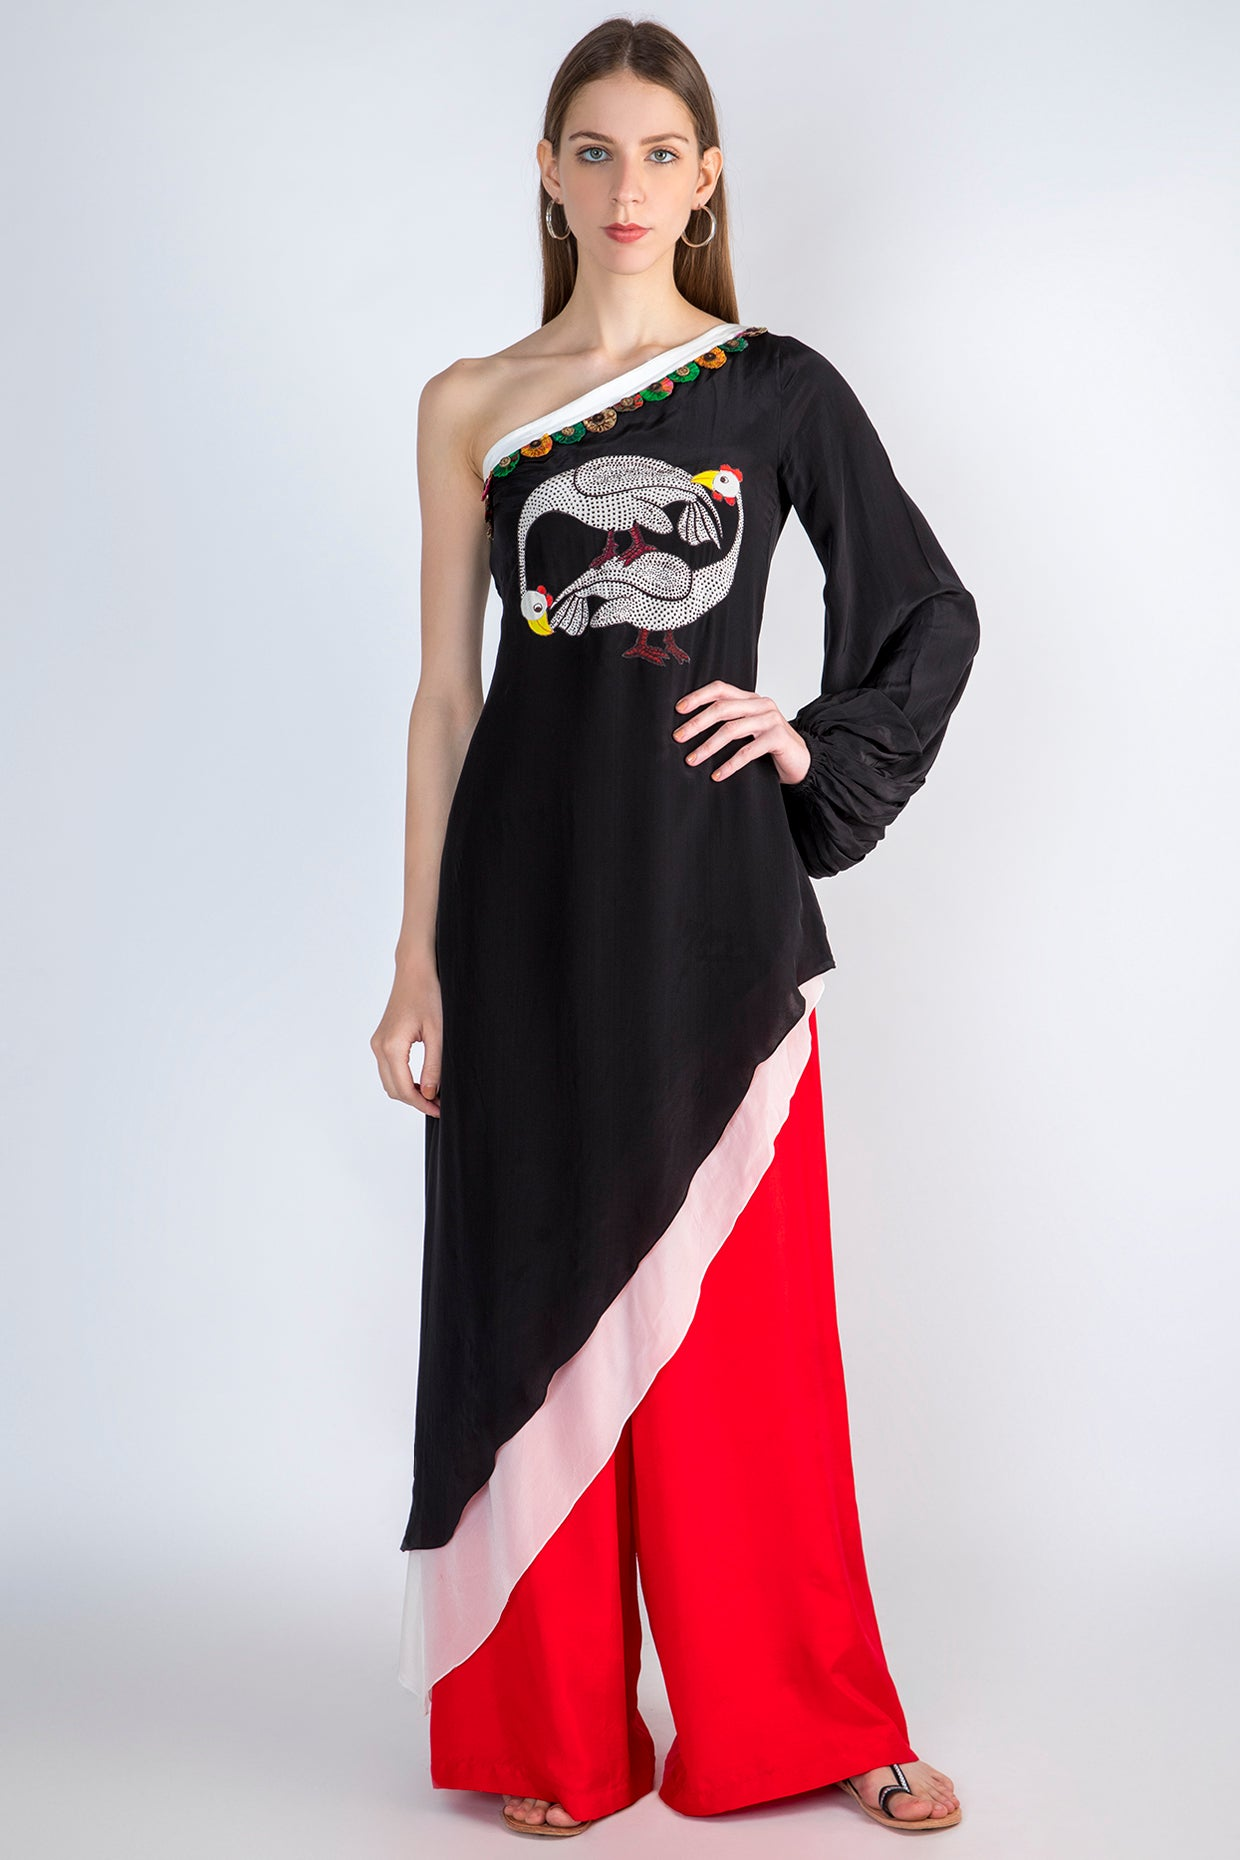 BLACK COSMIC FLOCK PRINTED ONE SHOULDER TUNIC & RED PANTS - The Grand Trunk